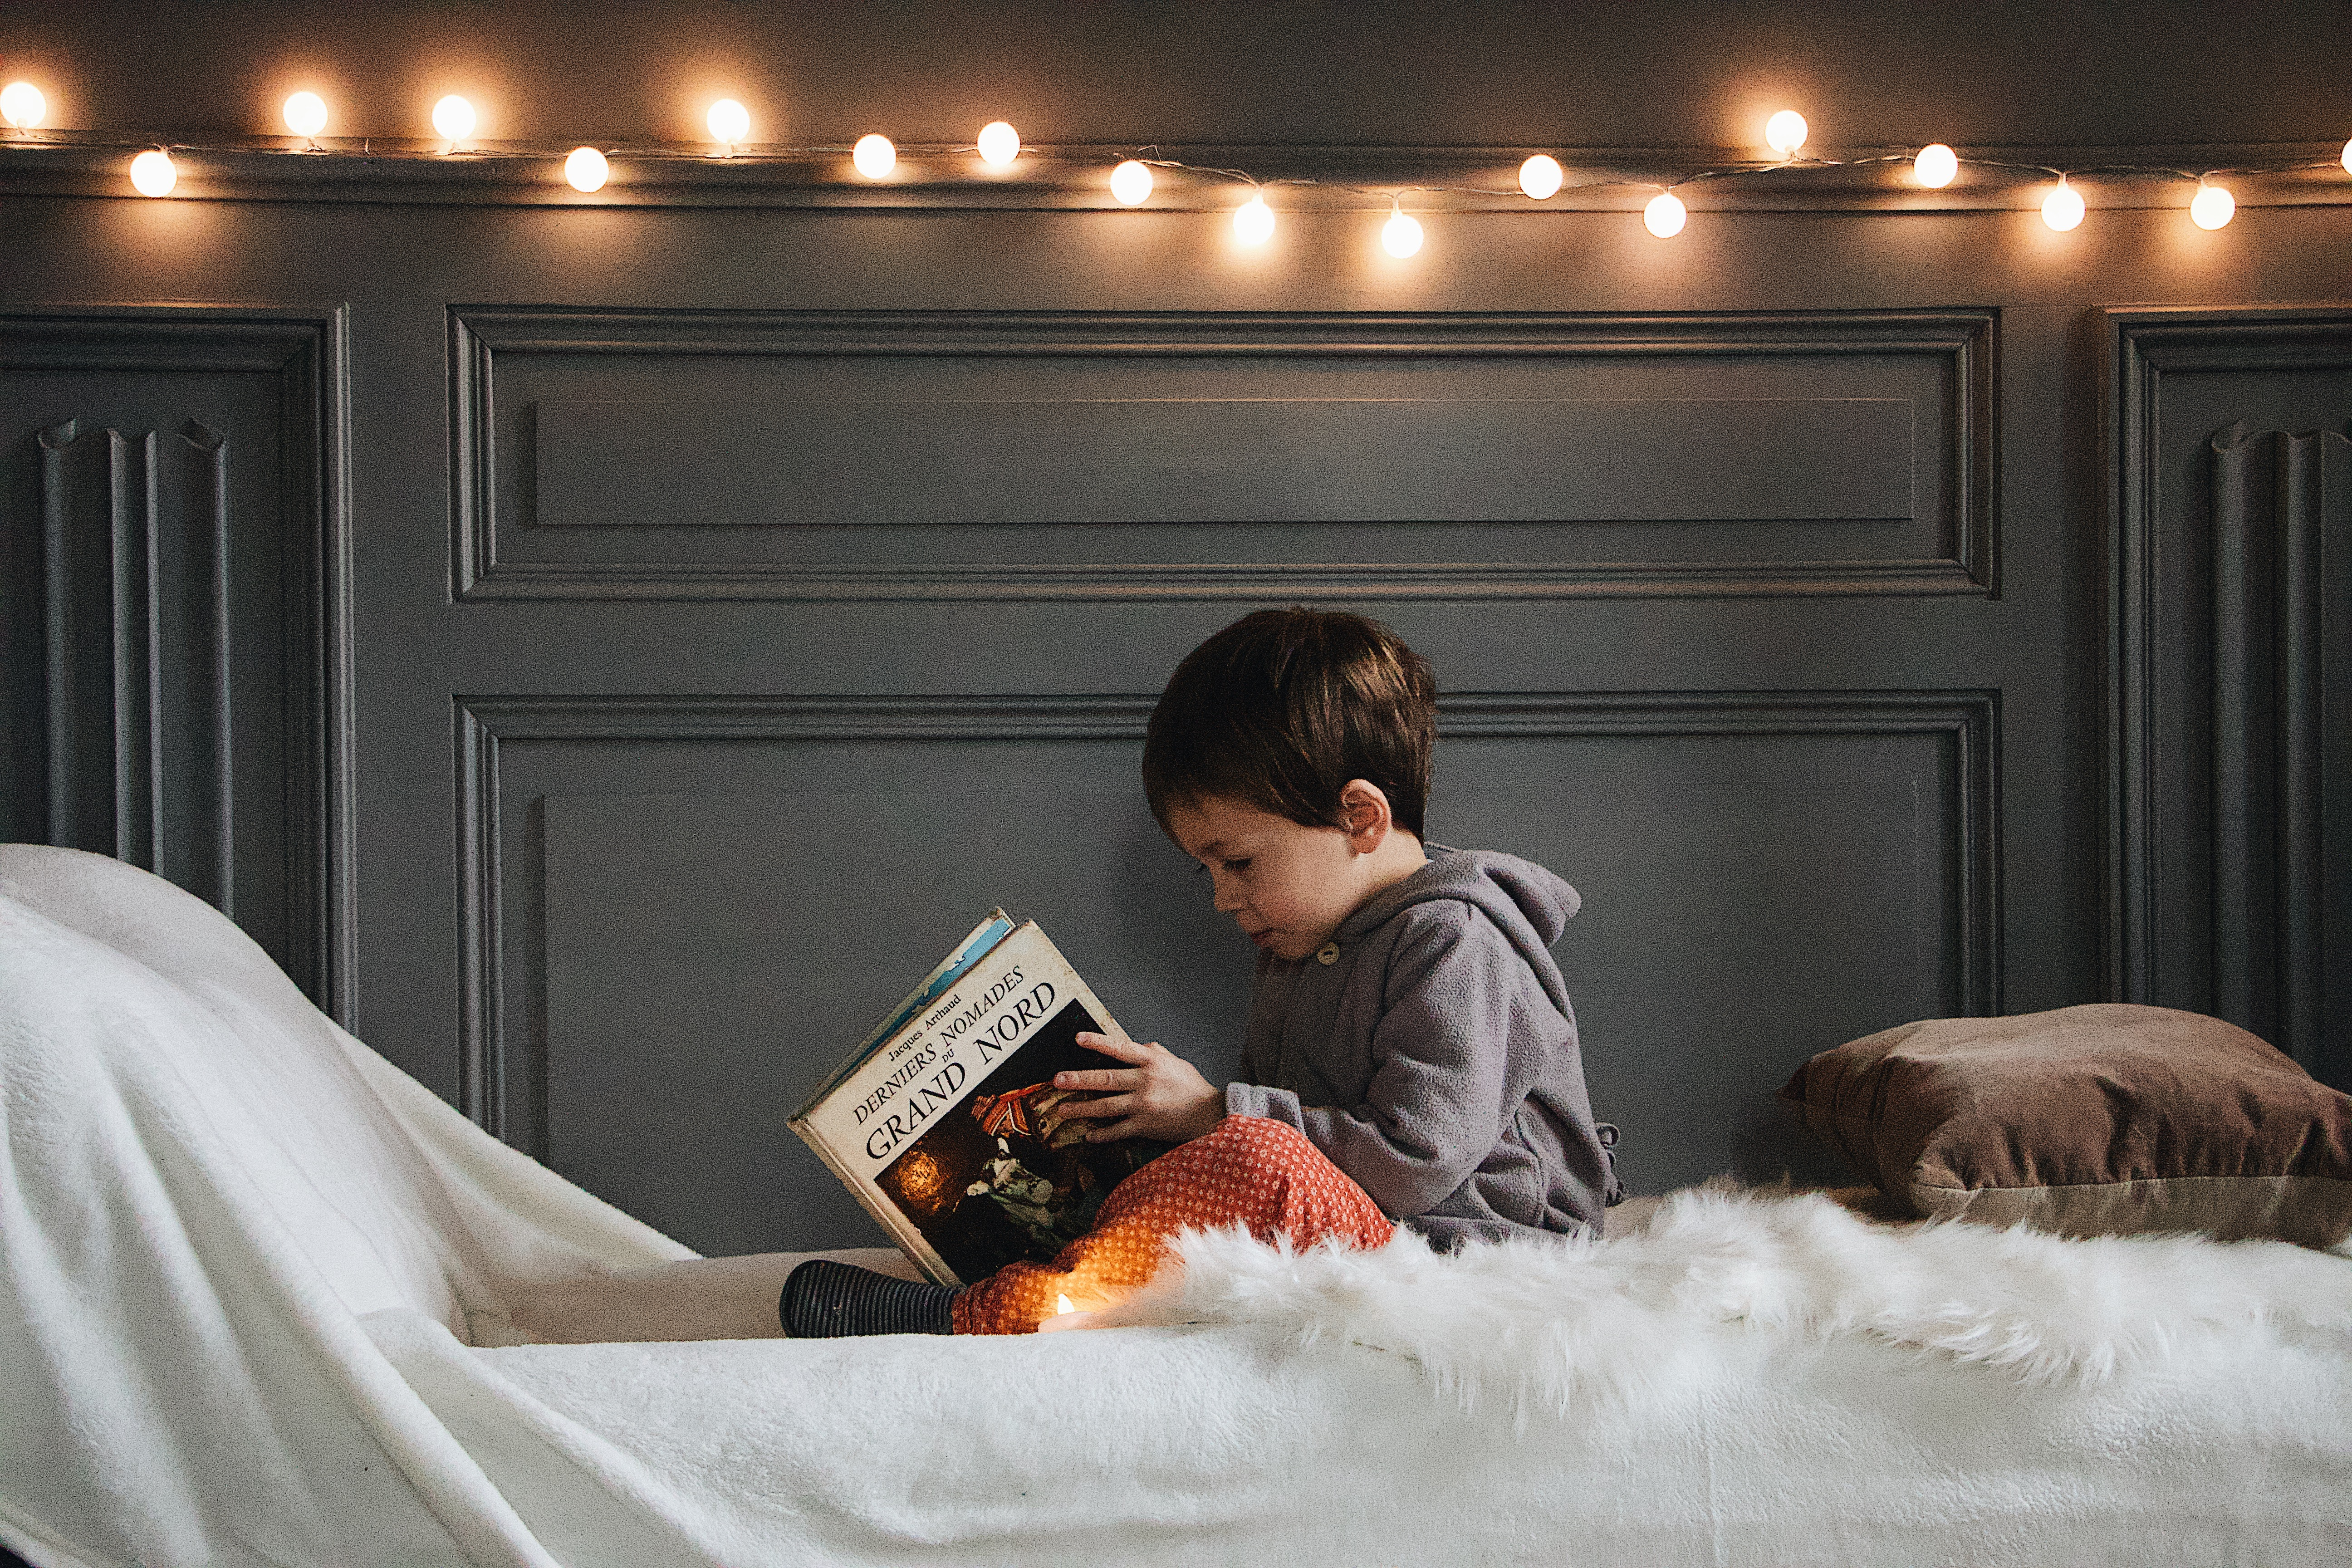 5 Tips on Creating Learning Spaces at Home